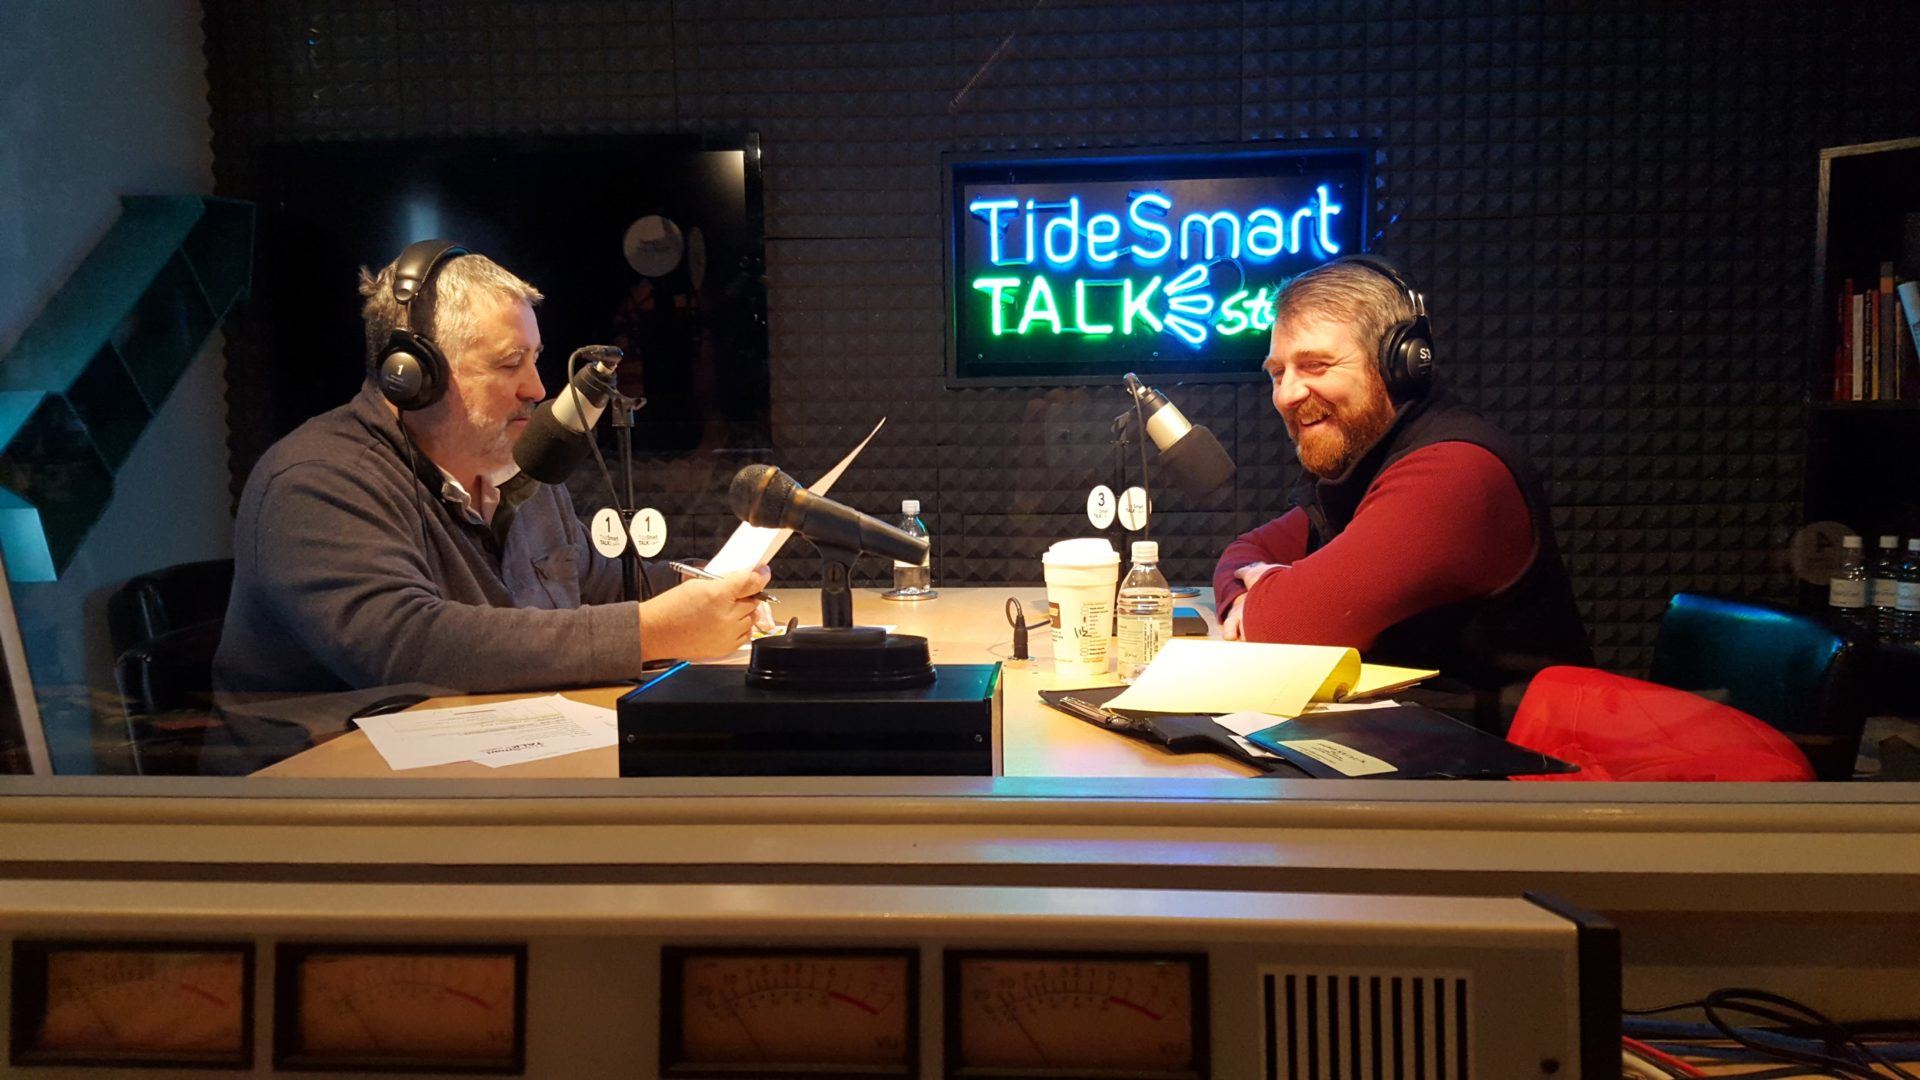 Host of TideSmart Talk with Stevoe, Steve Woods, welcomed Ben Waxman (at right).